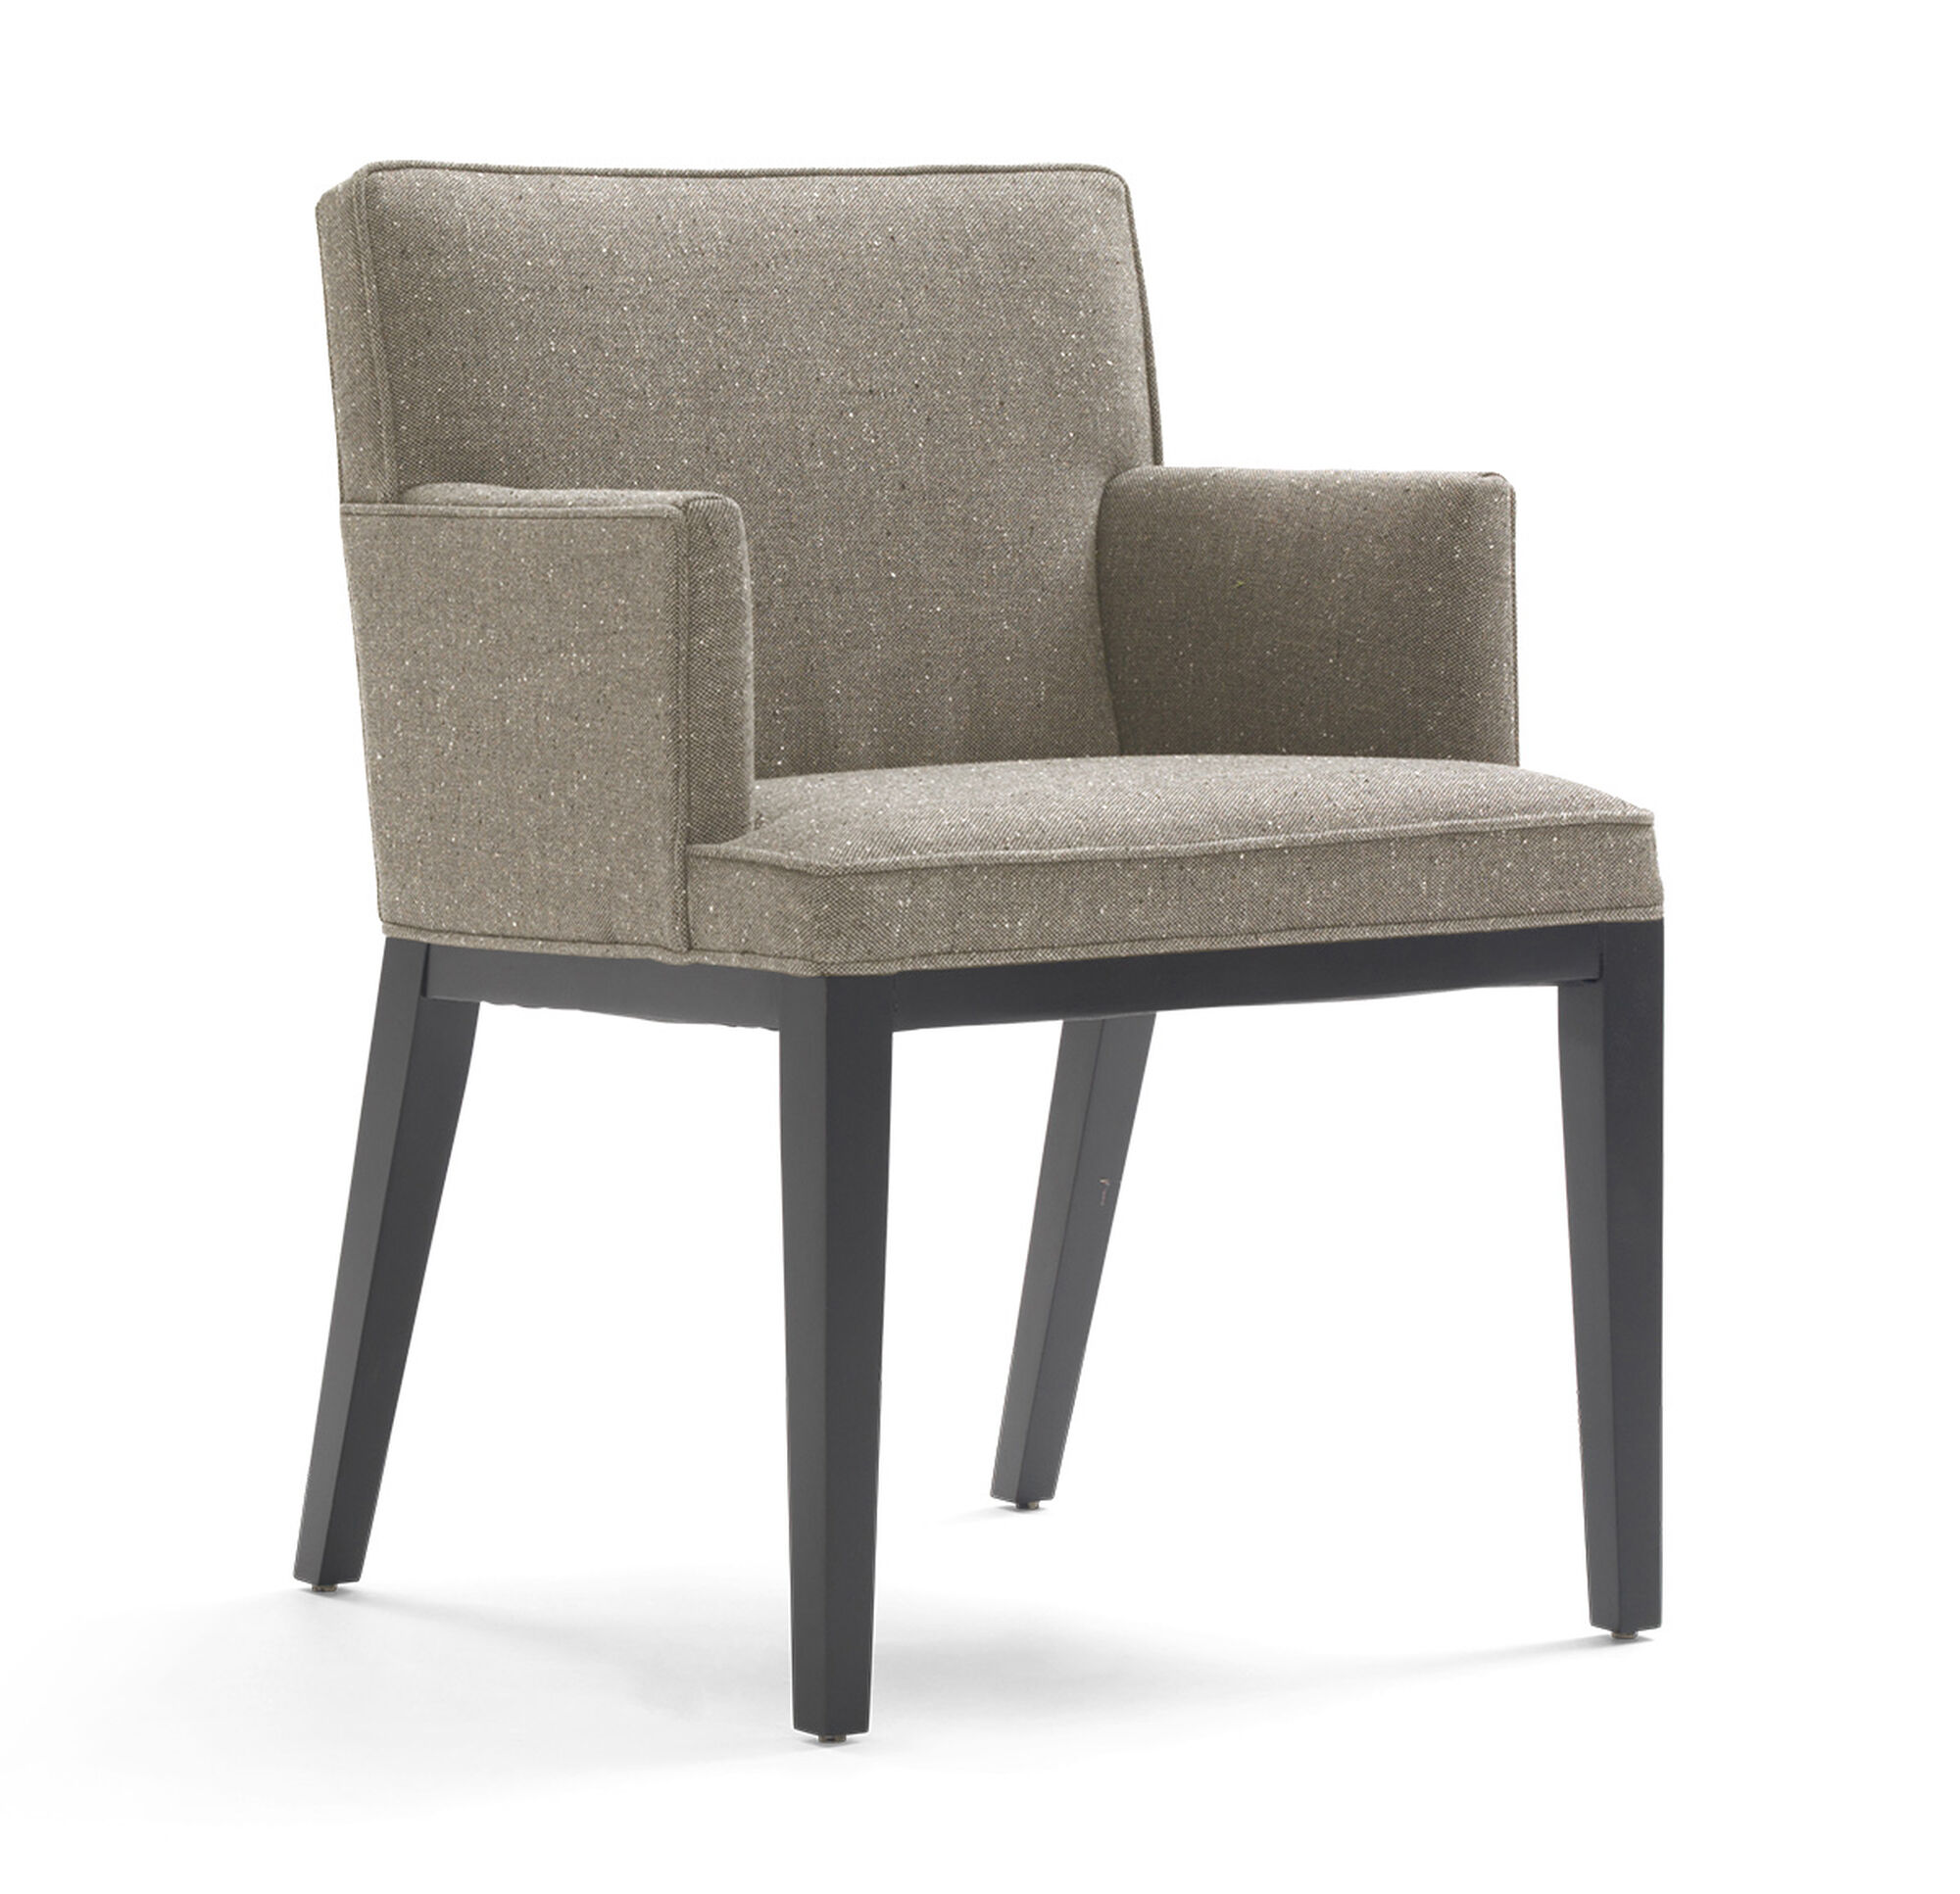 CAMERON ARM DINING CHAIR